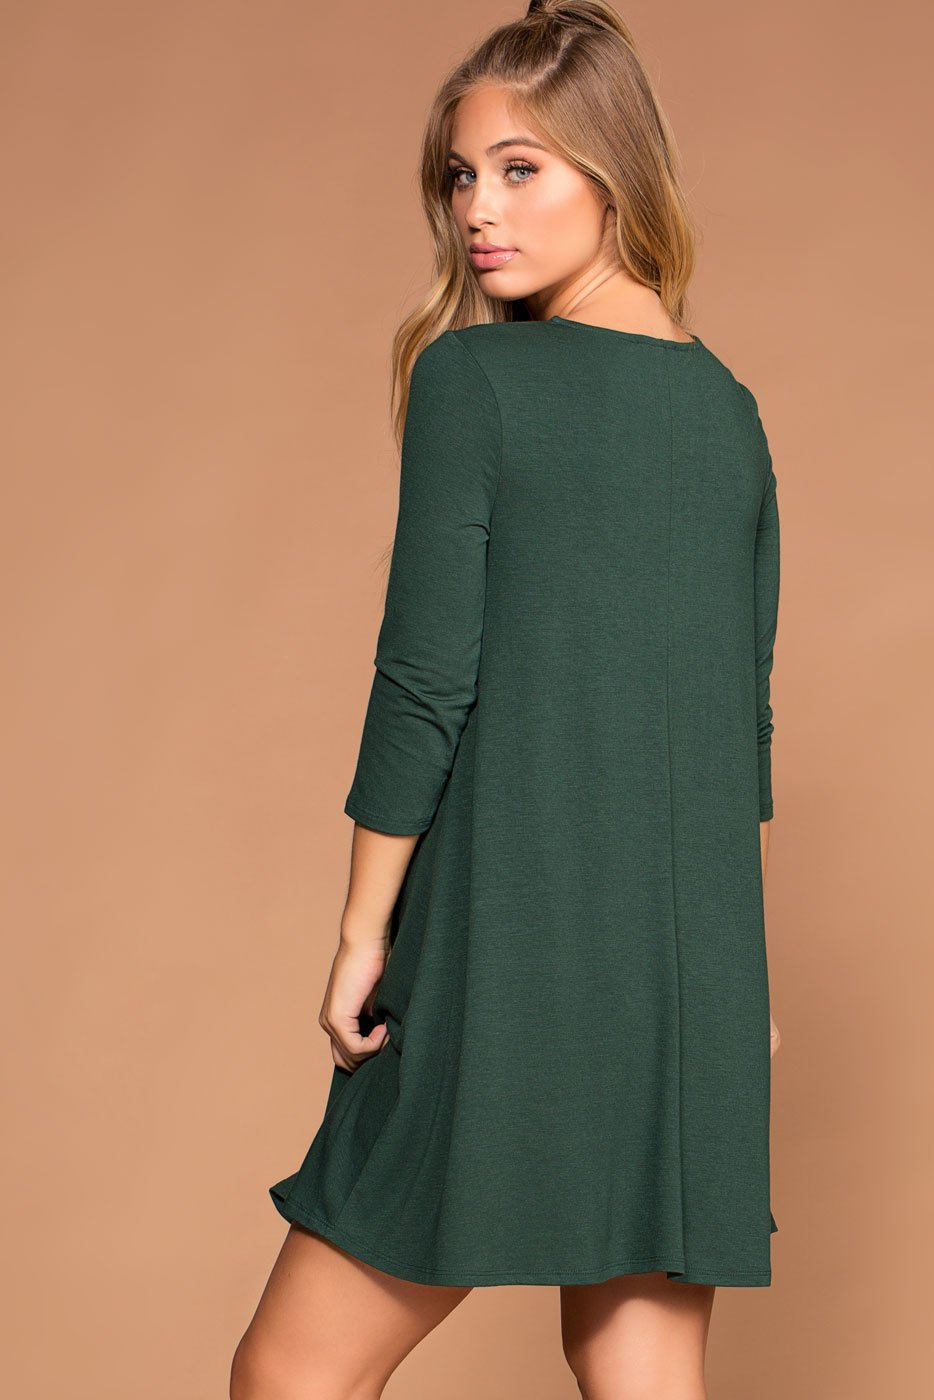 Dresses - Catching Leaves Swing Pocket Dress - Hunter